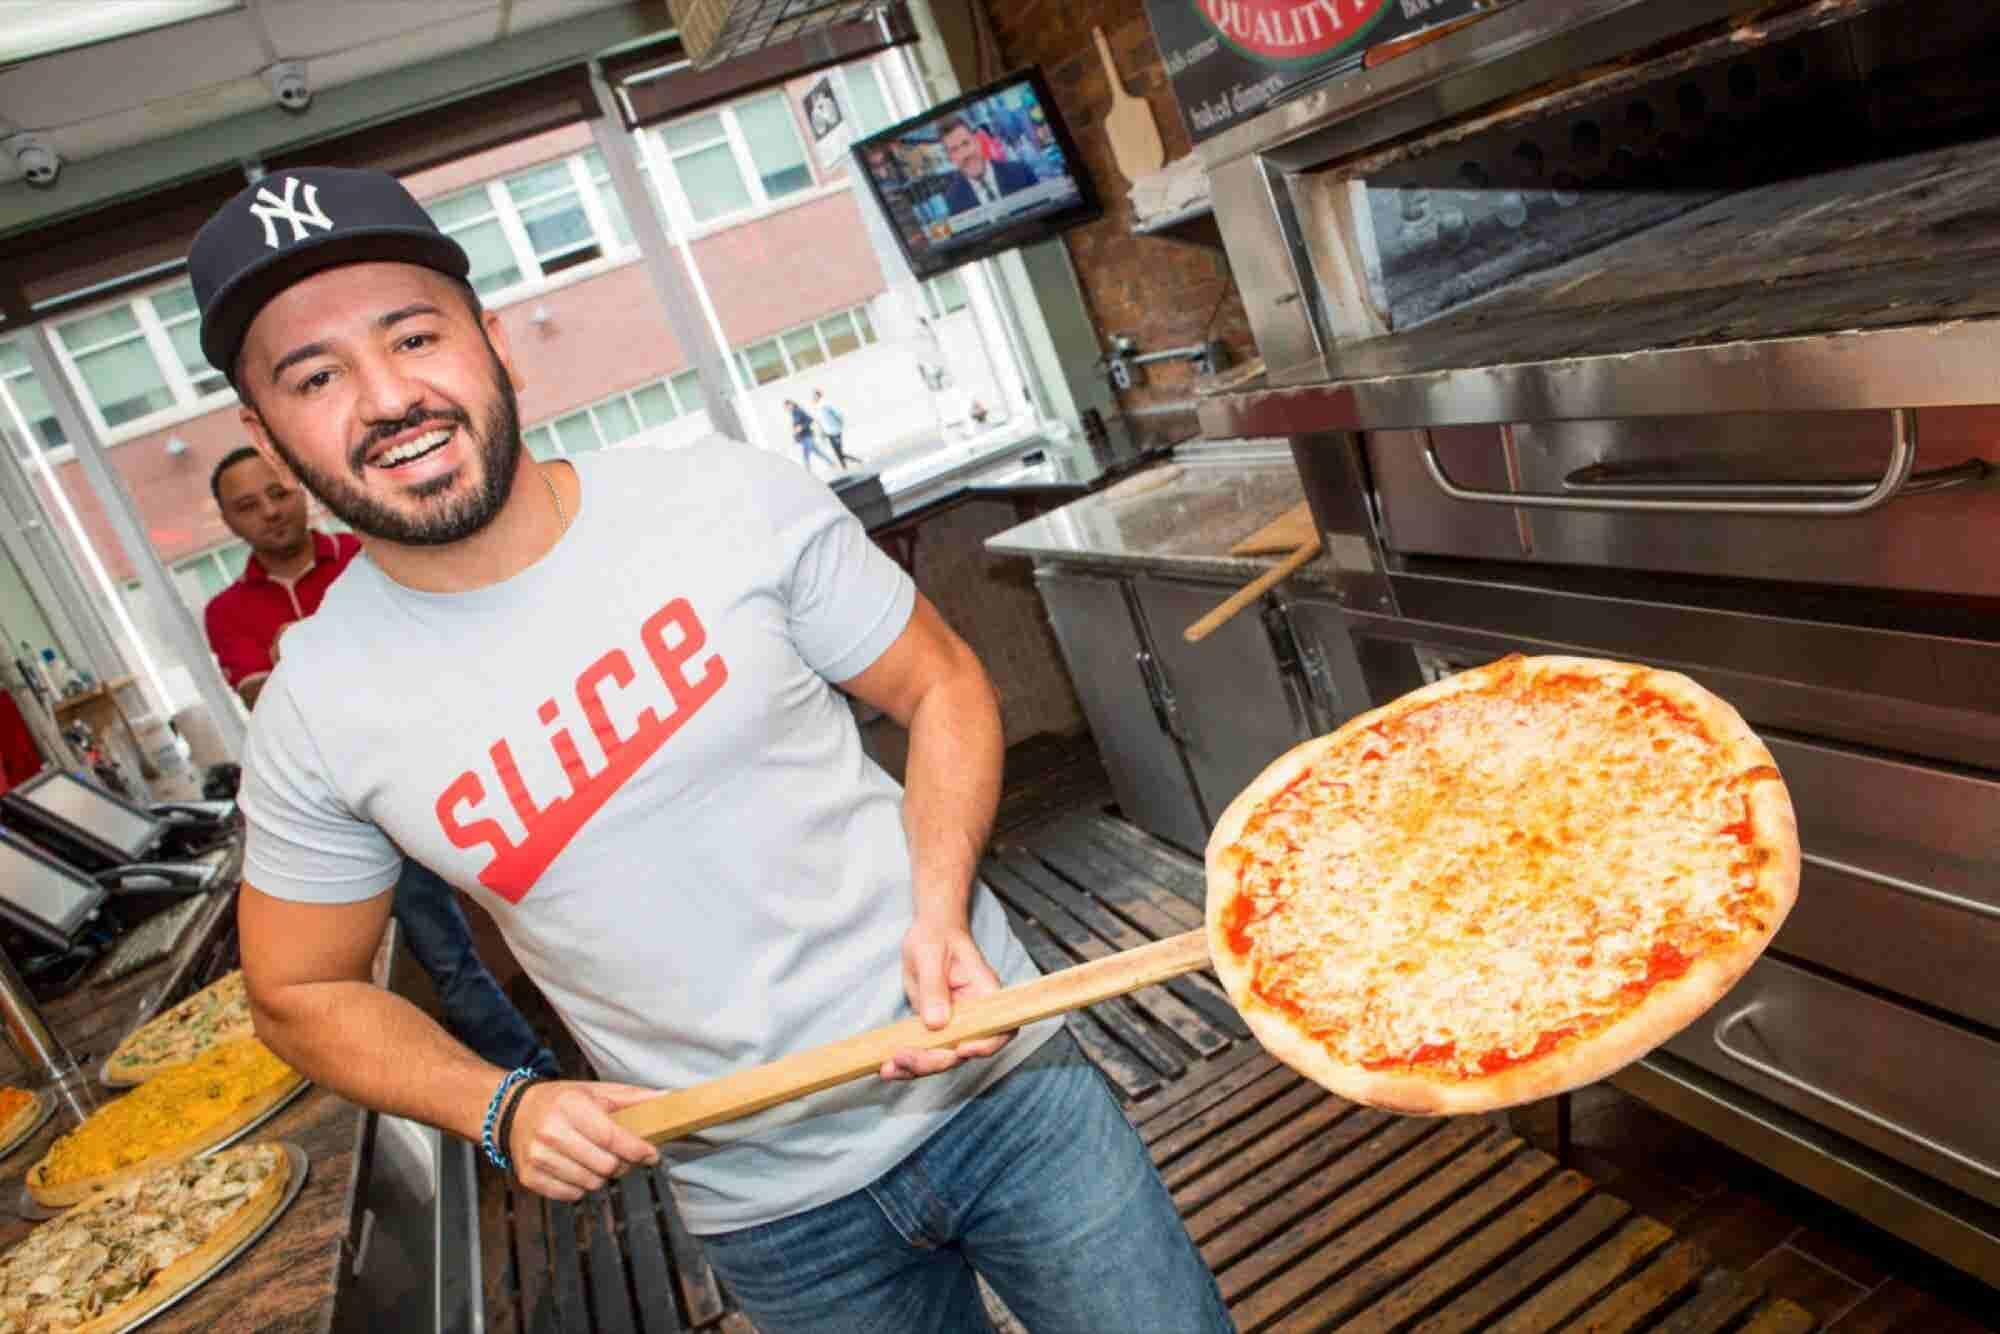 This One-Person Pizza Startup Has Hired More Than 100 People in Less Than a Year